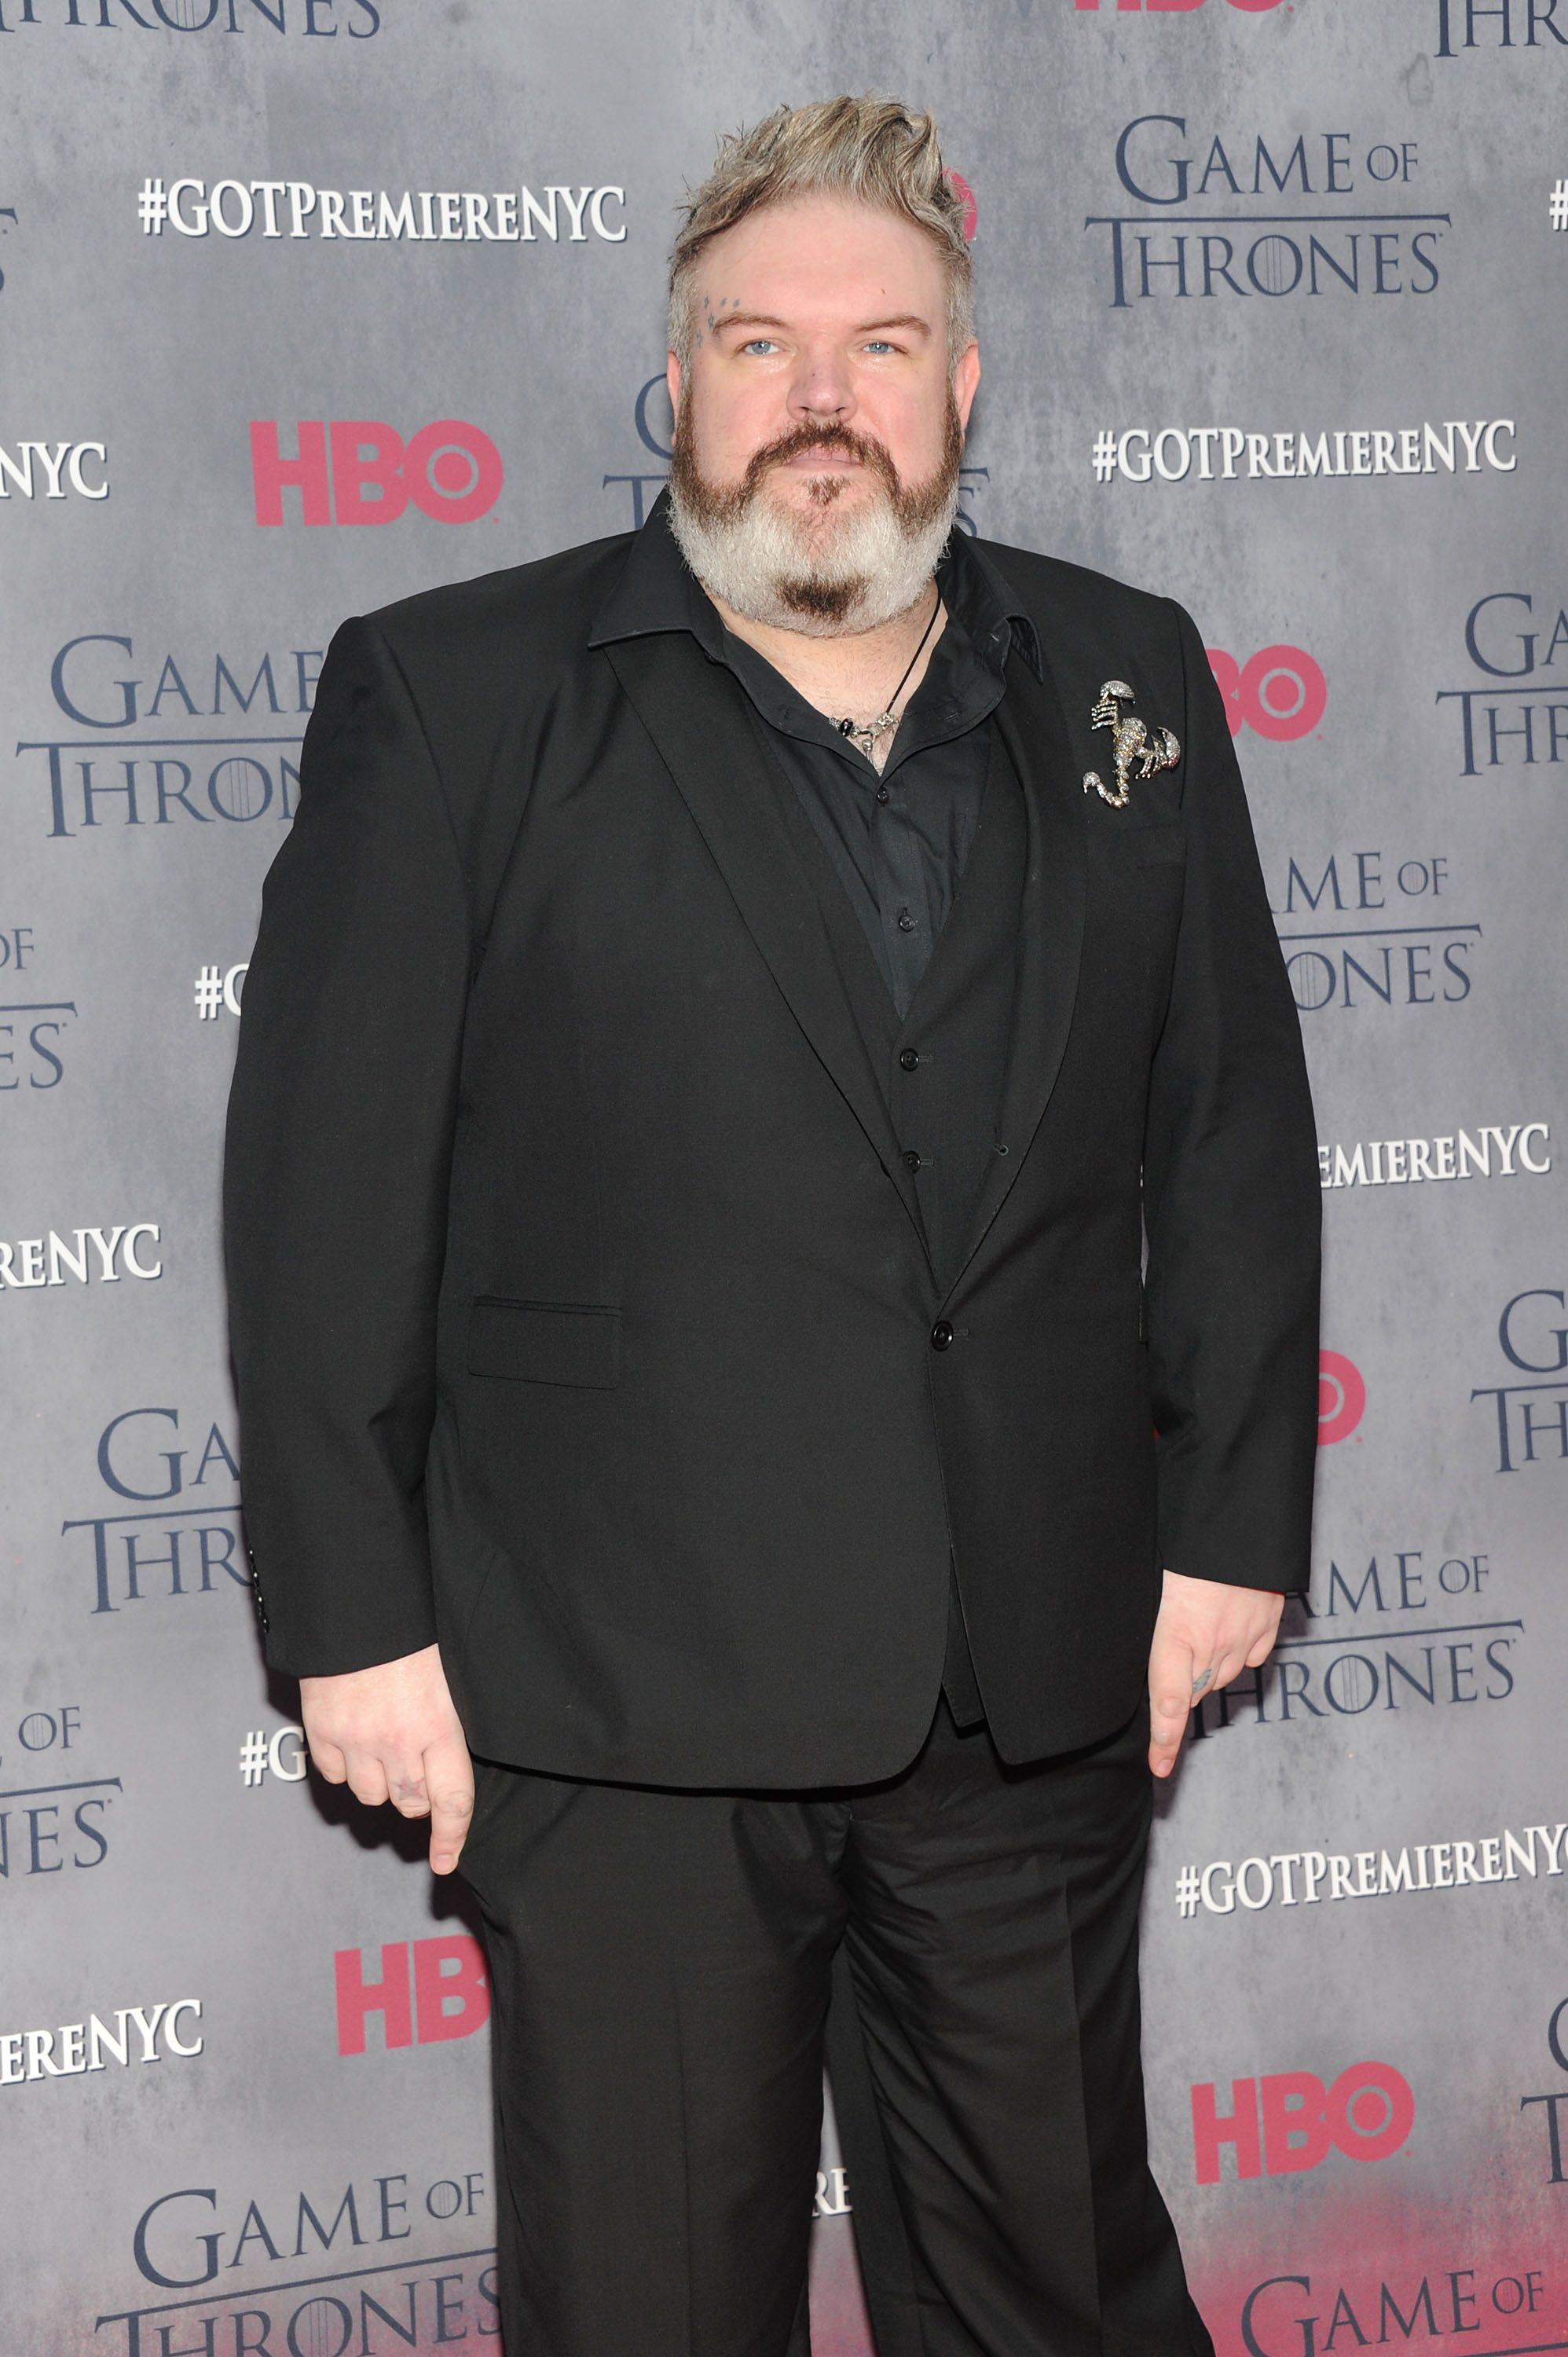 NEW YORK, NY - MARCH 18:  Actor Kristian Nairn attends the 'Game Of Thrones' Season 4 New York premiere at Avery Fisher Hall, Lincoln Center on March 18, 2014 in New York City.  (Photo by Jamie McCarthy/Getty Images)